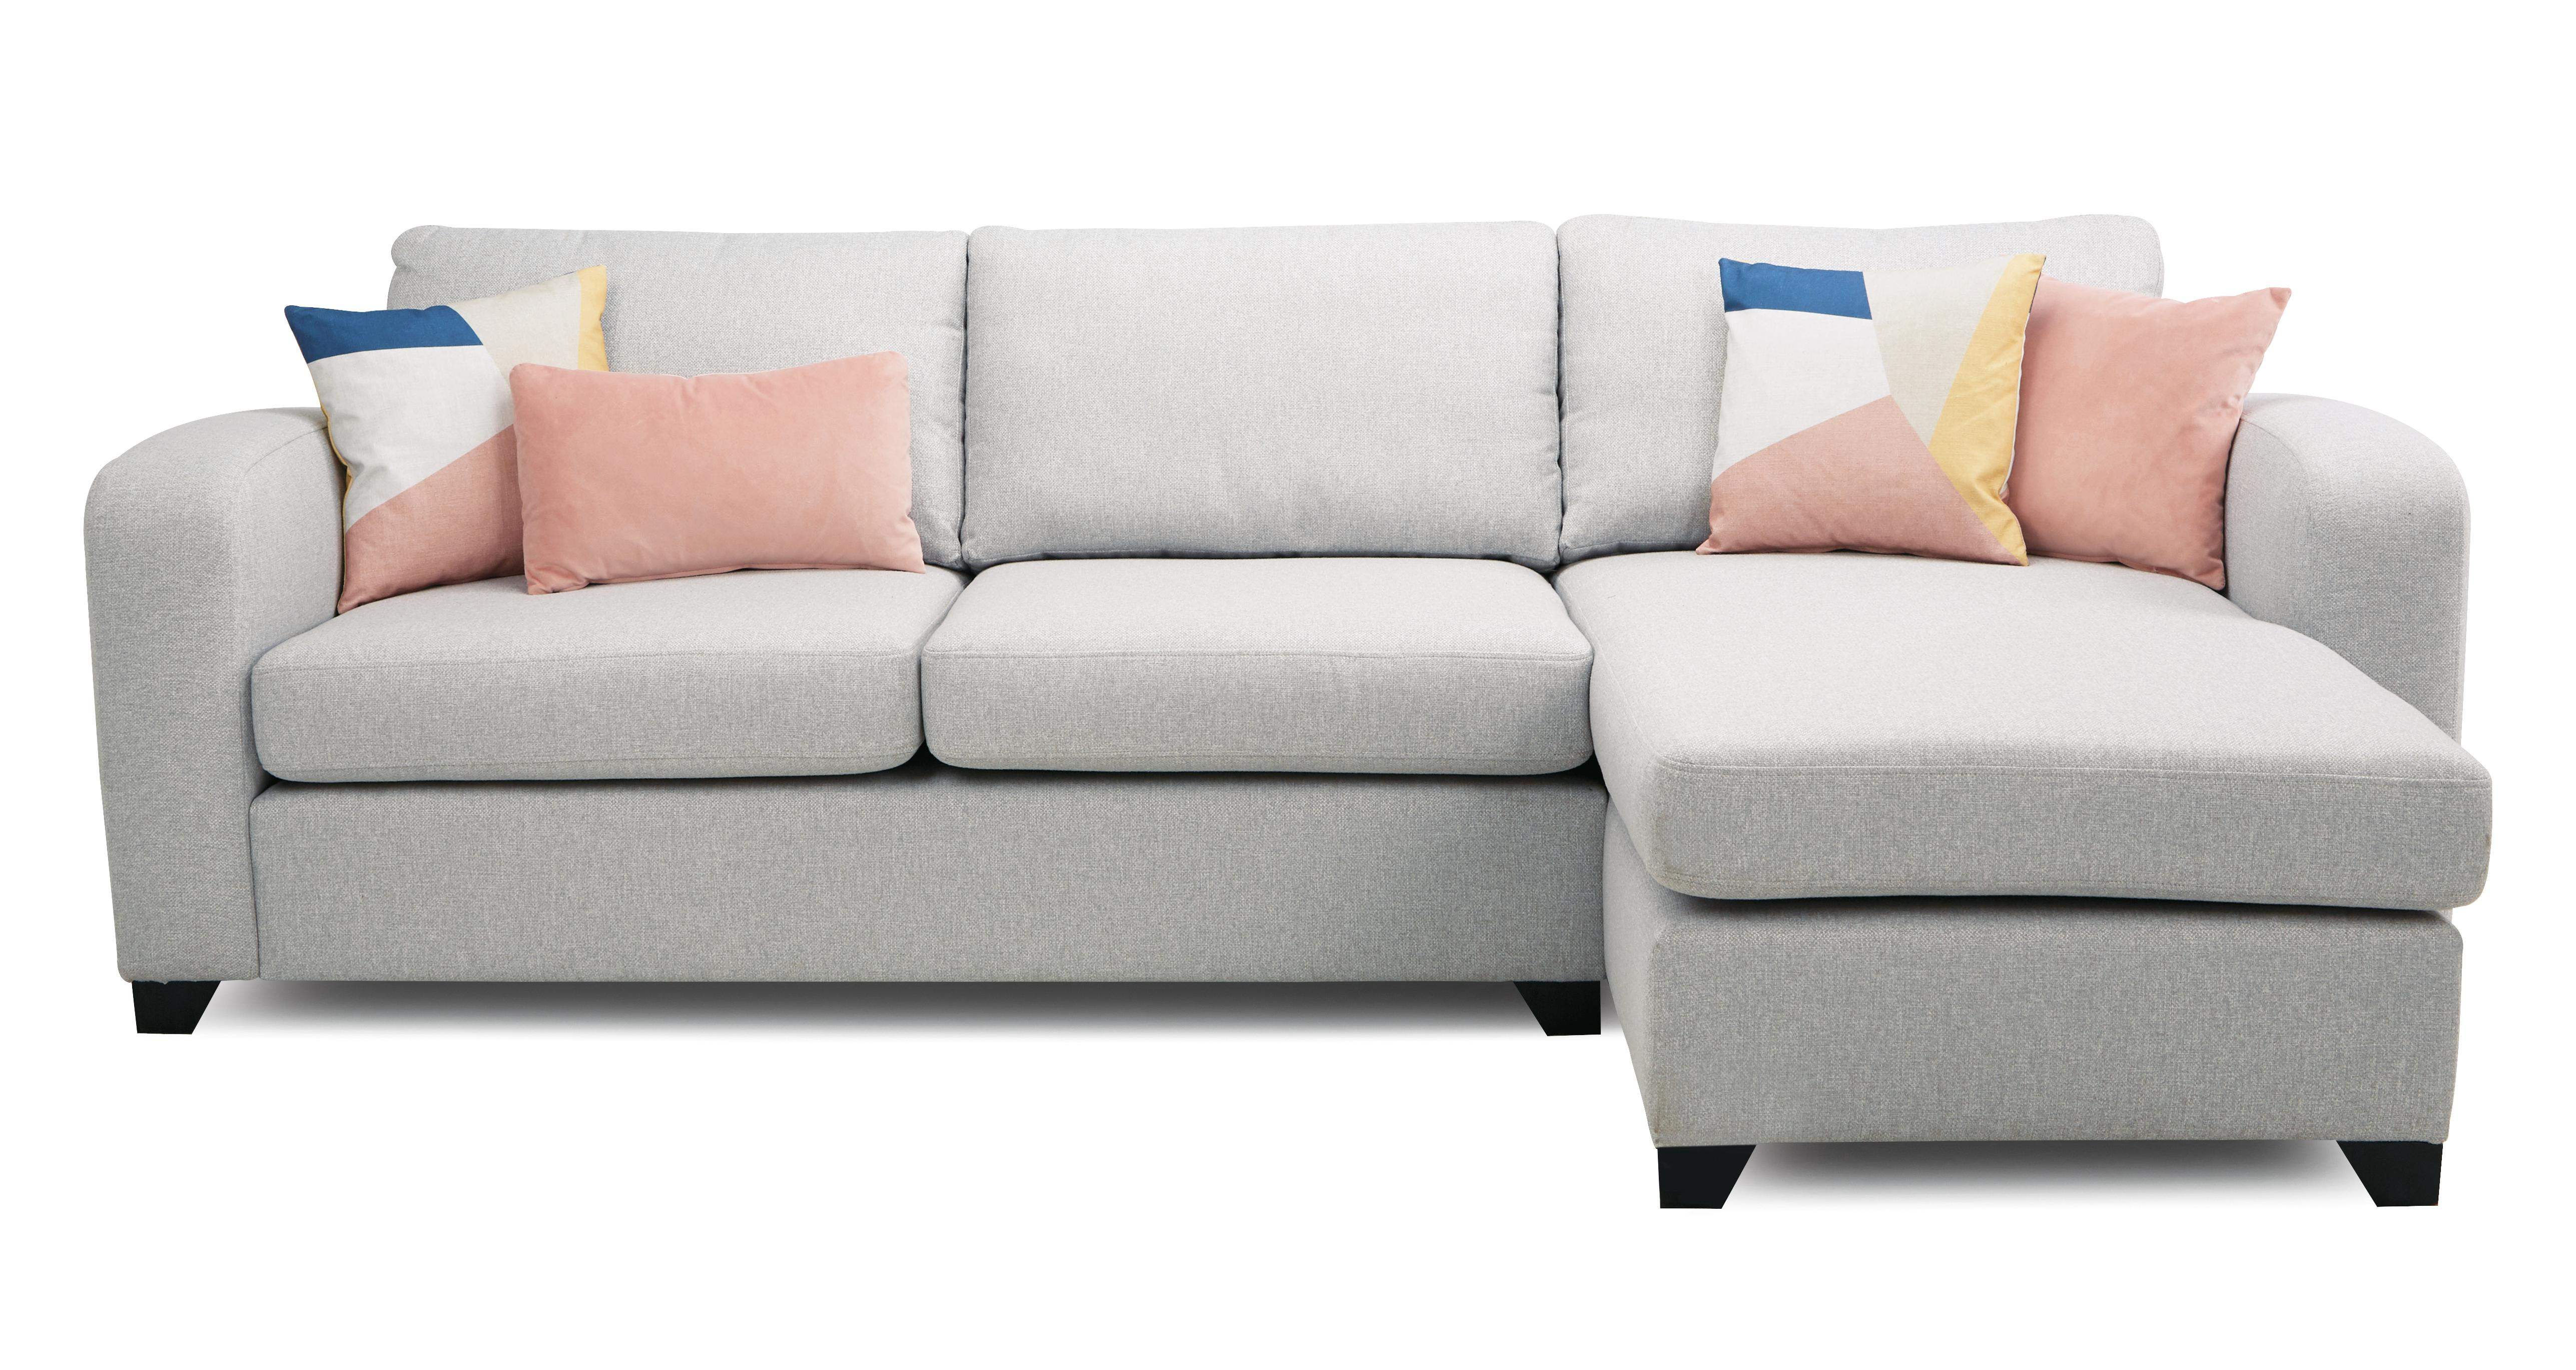 Layla Right Hand Facing Chaise End 3 Seater Sofa Layla Plain Dfs